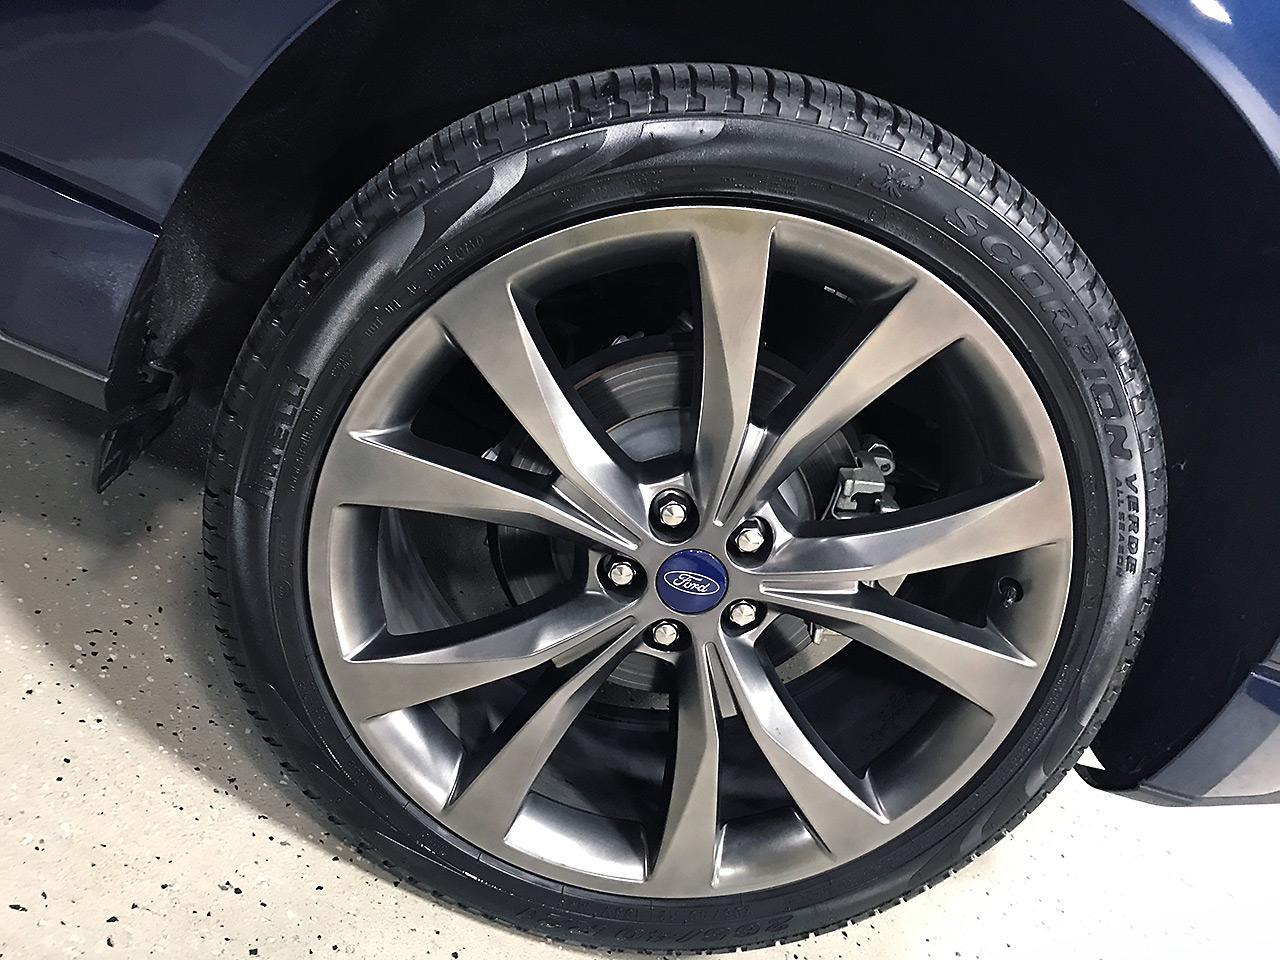 Ford Edge Suv Compact Tire 2